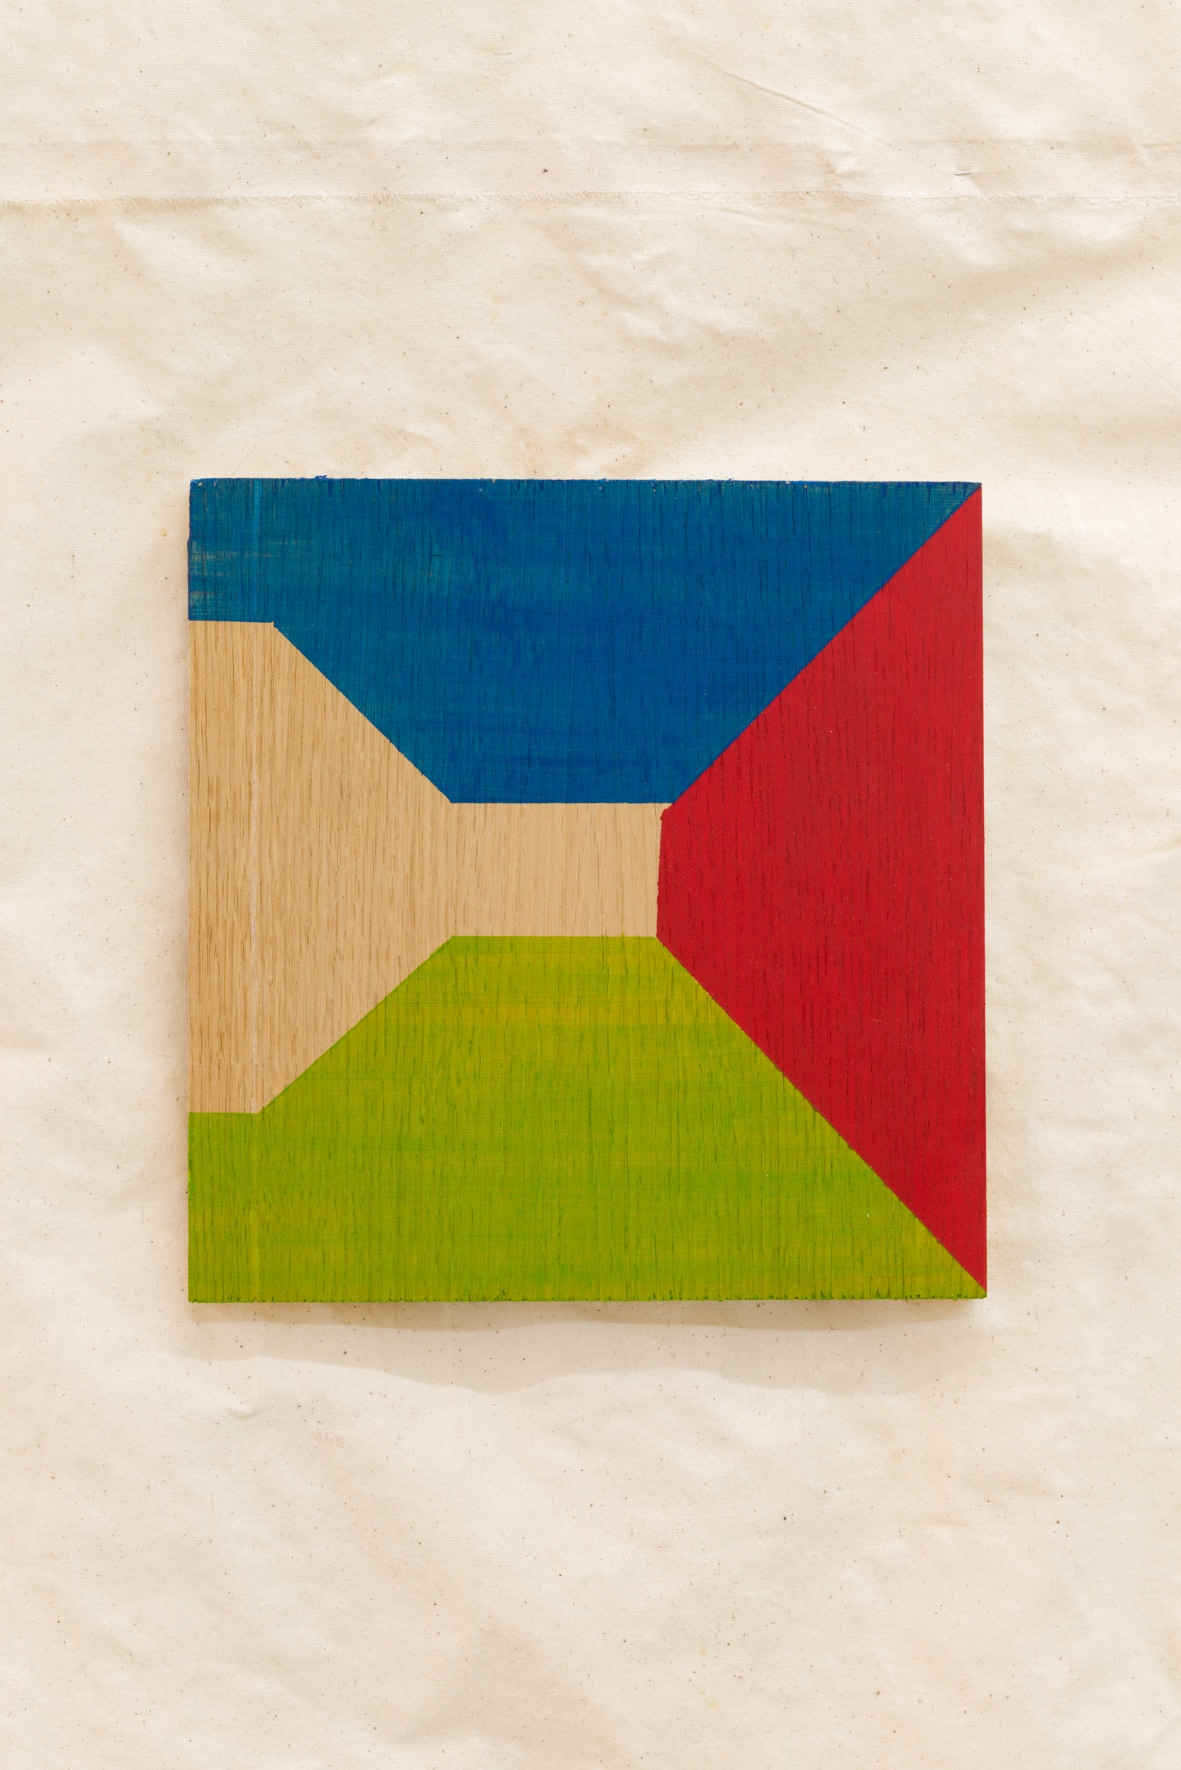 Charlie Jeffery, Illusions for people (again) #1 (blue/green/red), 2016 Acrylic paint on wood